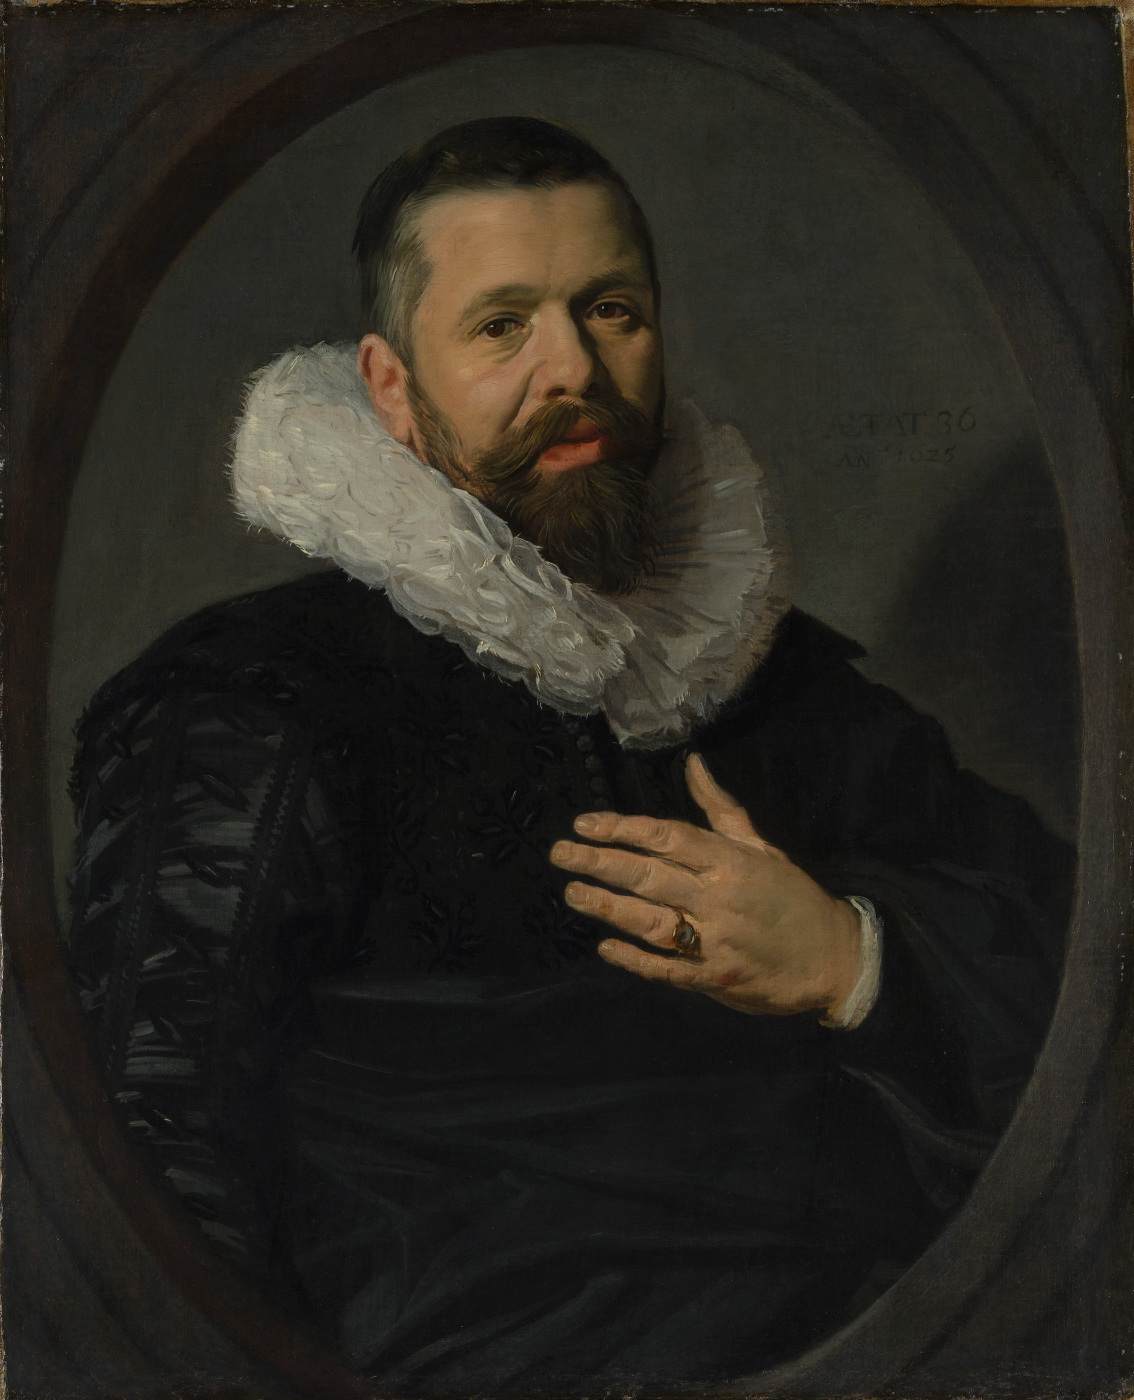 Frans Hals. Portrait of a bearded man with a ring